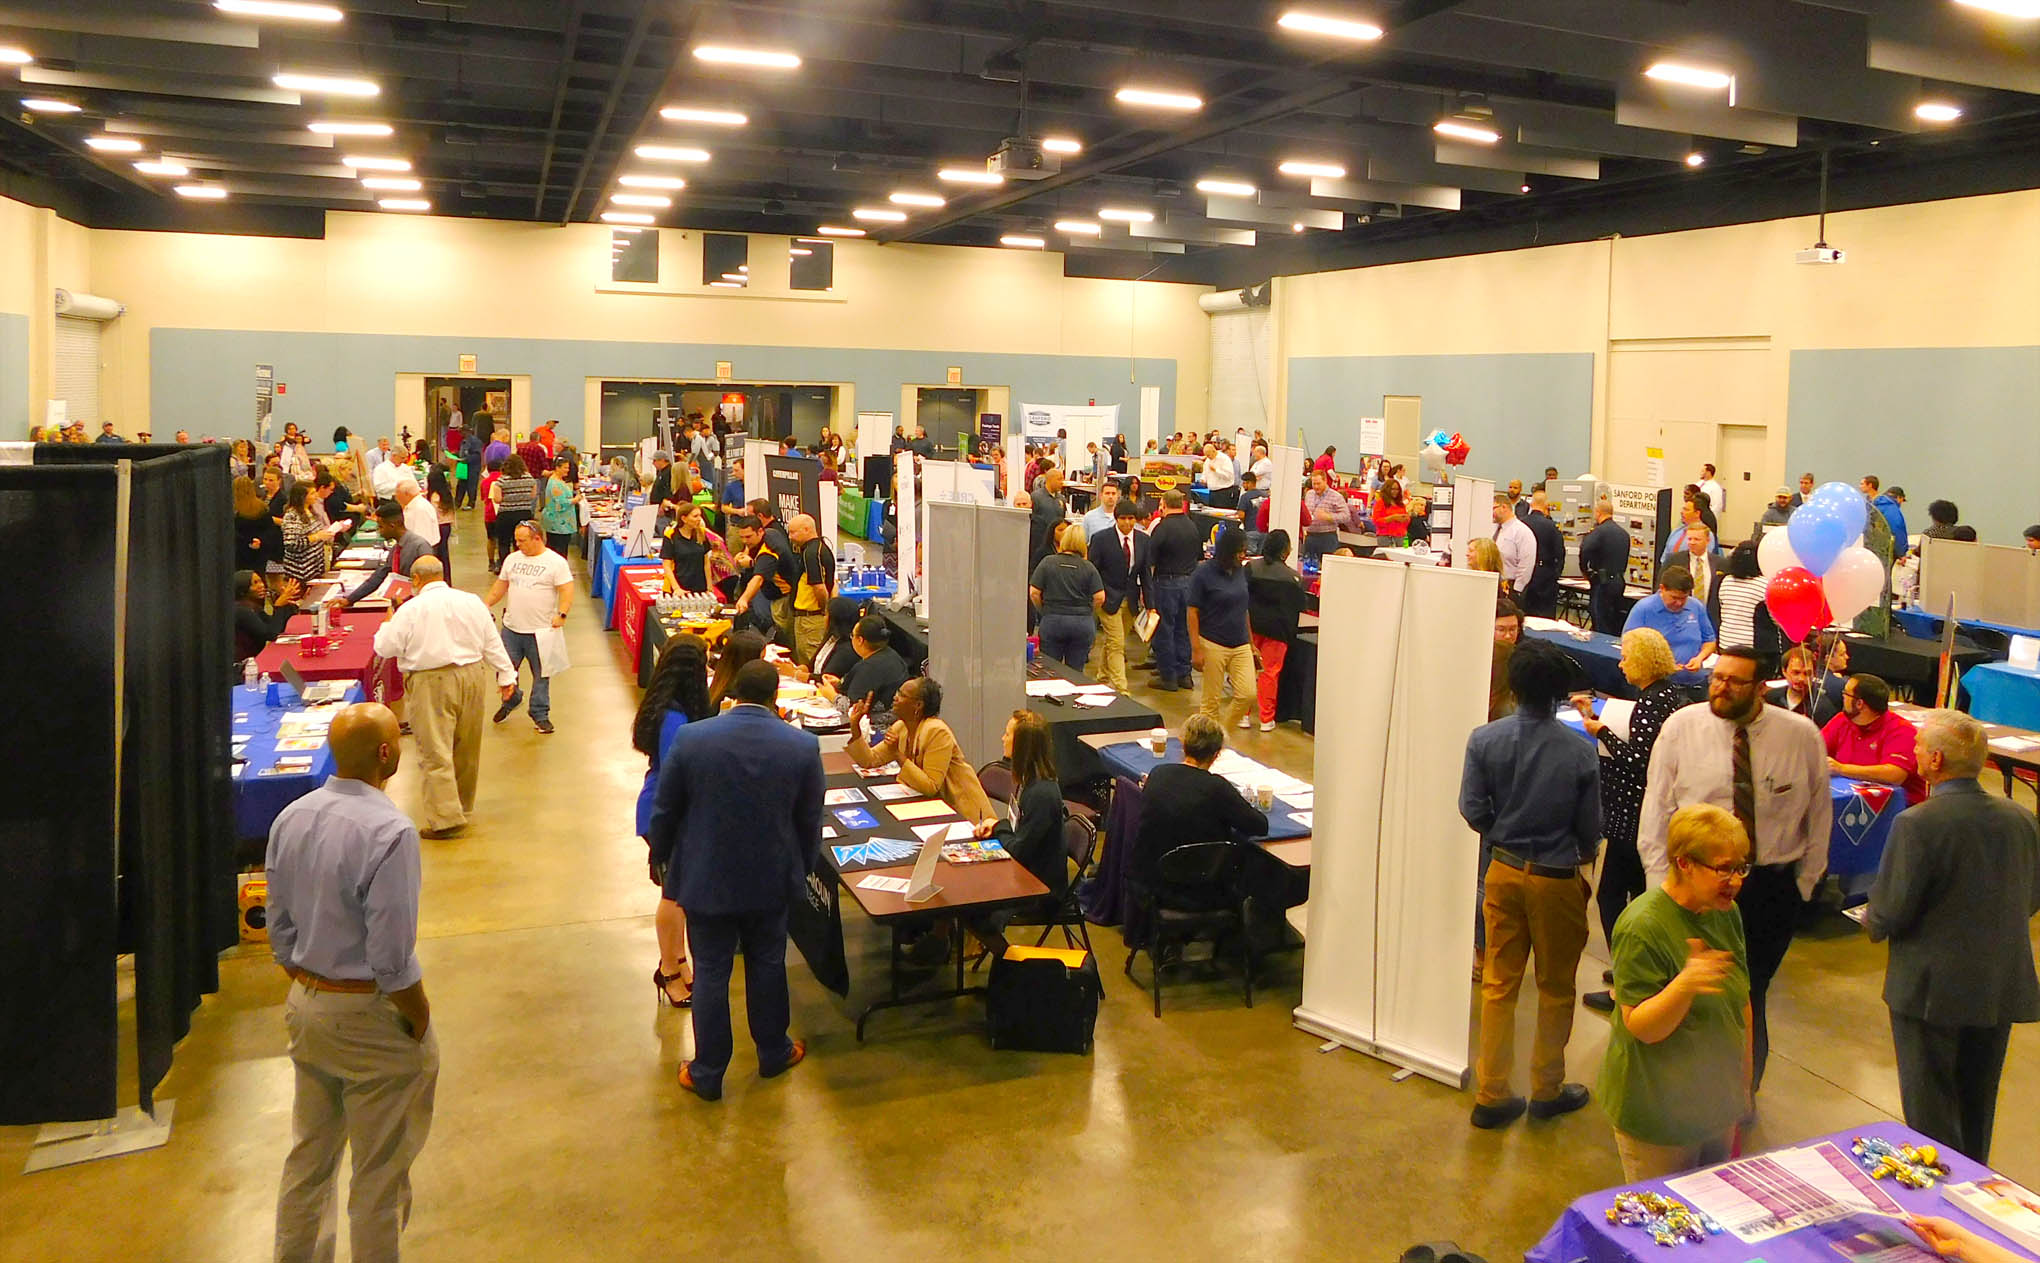 Click to enlarge,  Approximately 125 exhibitors were present for the Central Carolina Community College Annual Career Fair 2019. For more information on the CCCC Career Center, people can contact the Career Center at 919-718-7396 or visit the CCCC website at www.cccc.edu/careercenter.